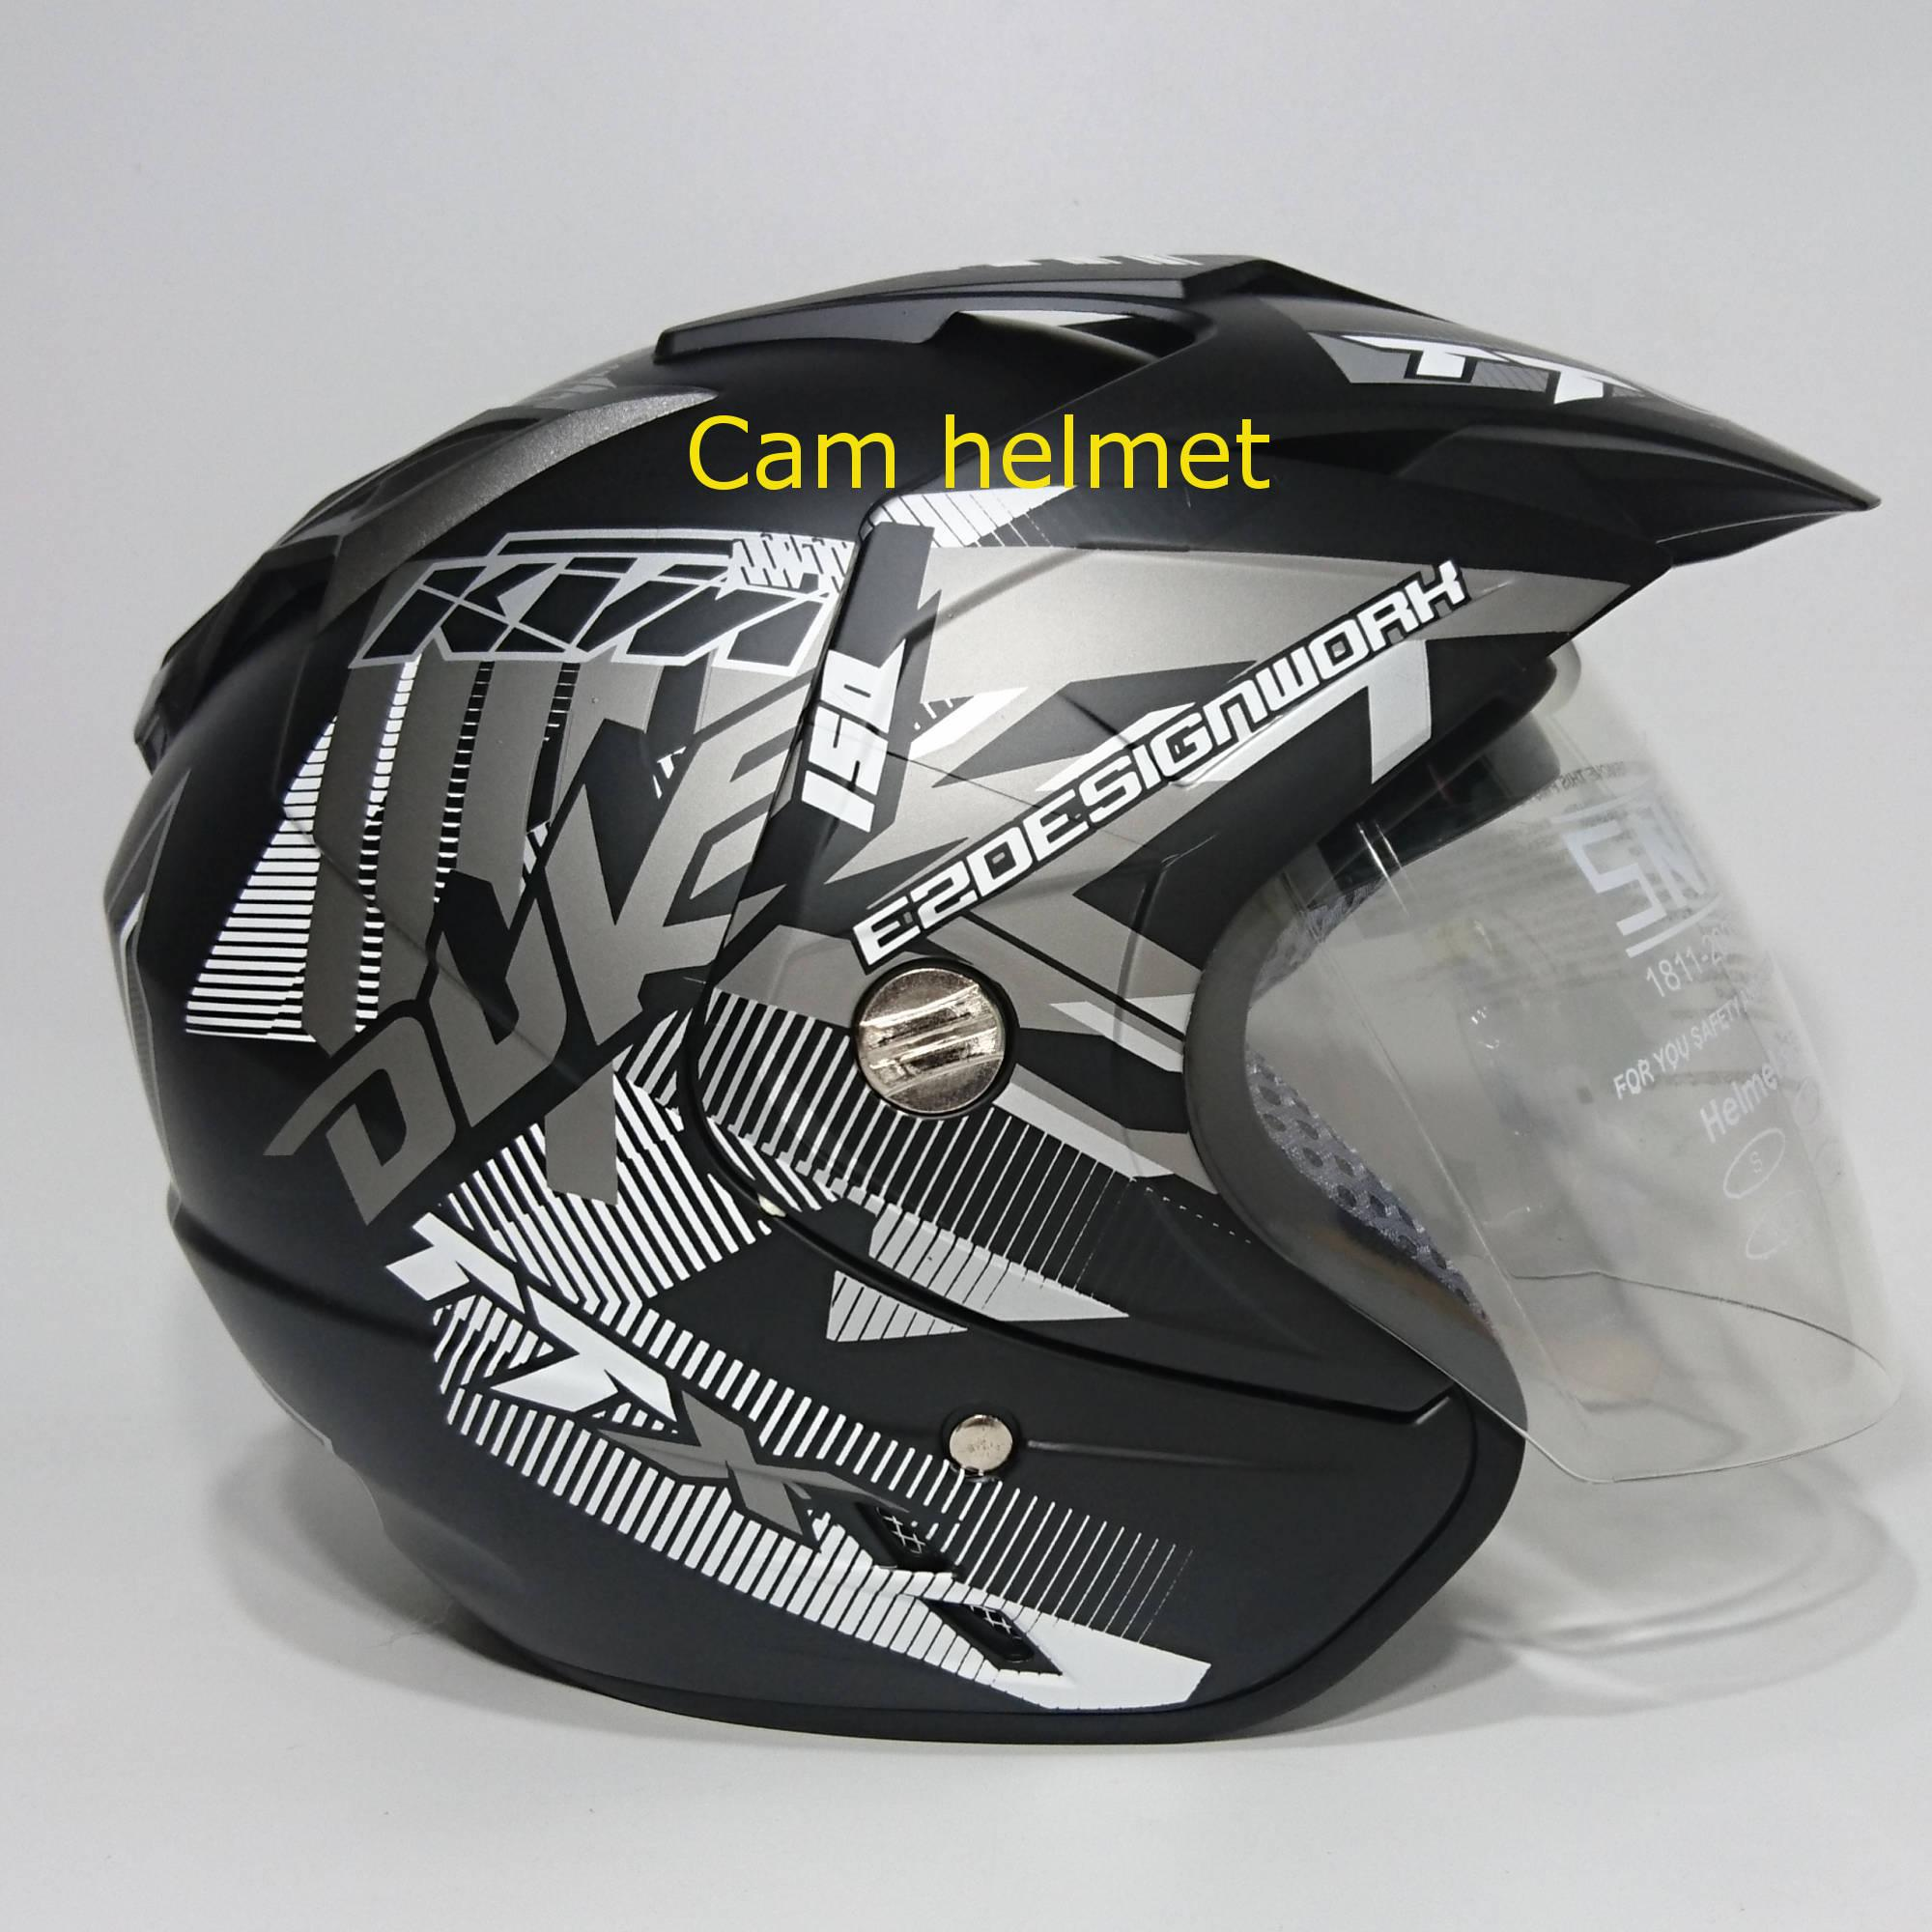 Helm 2 kaca (double visor) Duke Black doff abu